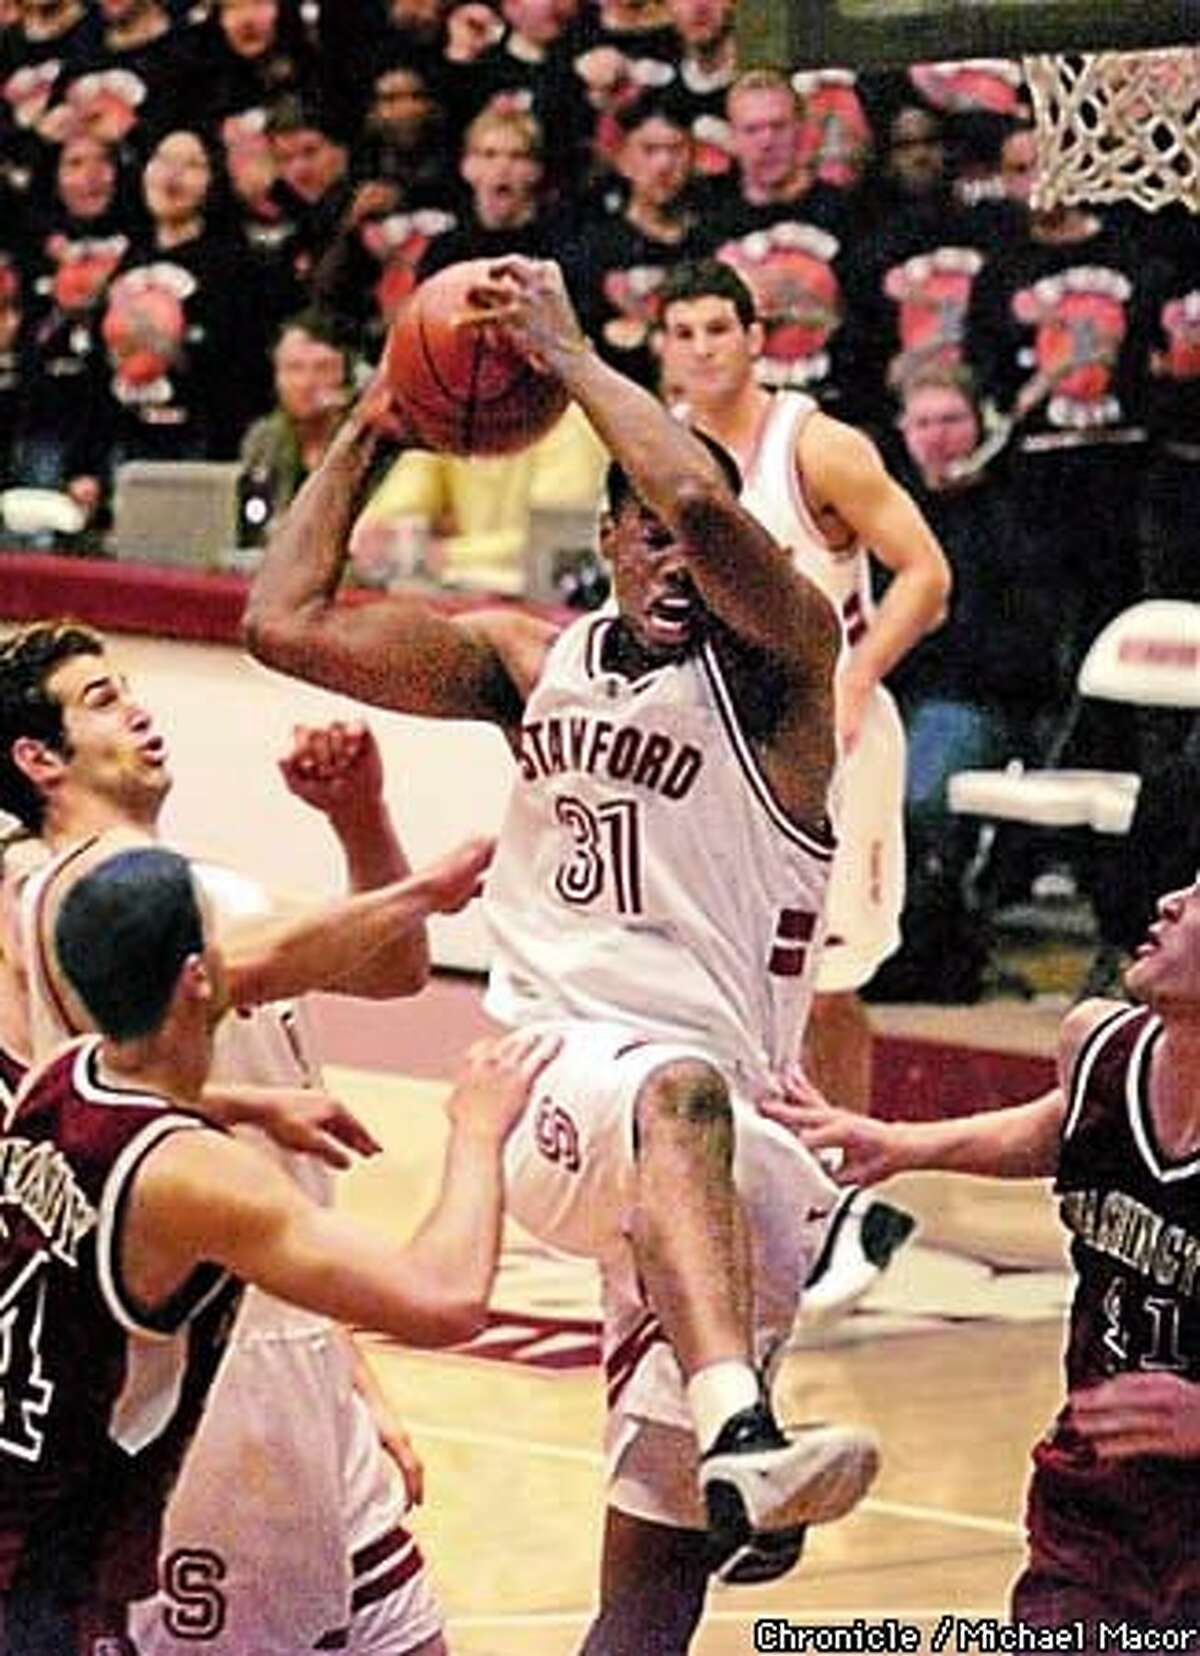 Jarron Collins pulled down a rebound in front of WSU's Chris Crosby (left) and Steve Slotemaker last night at Maples Pavilion.